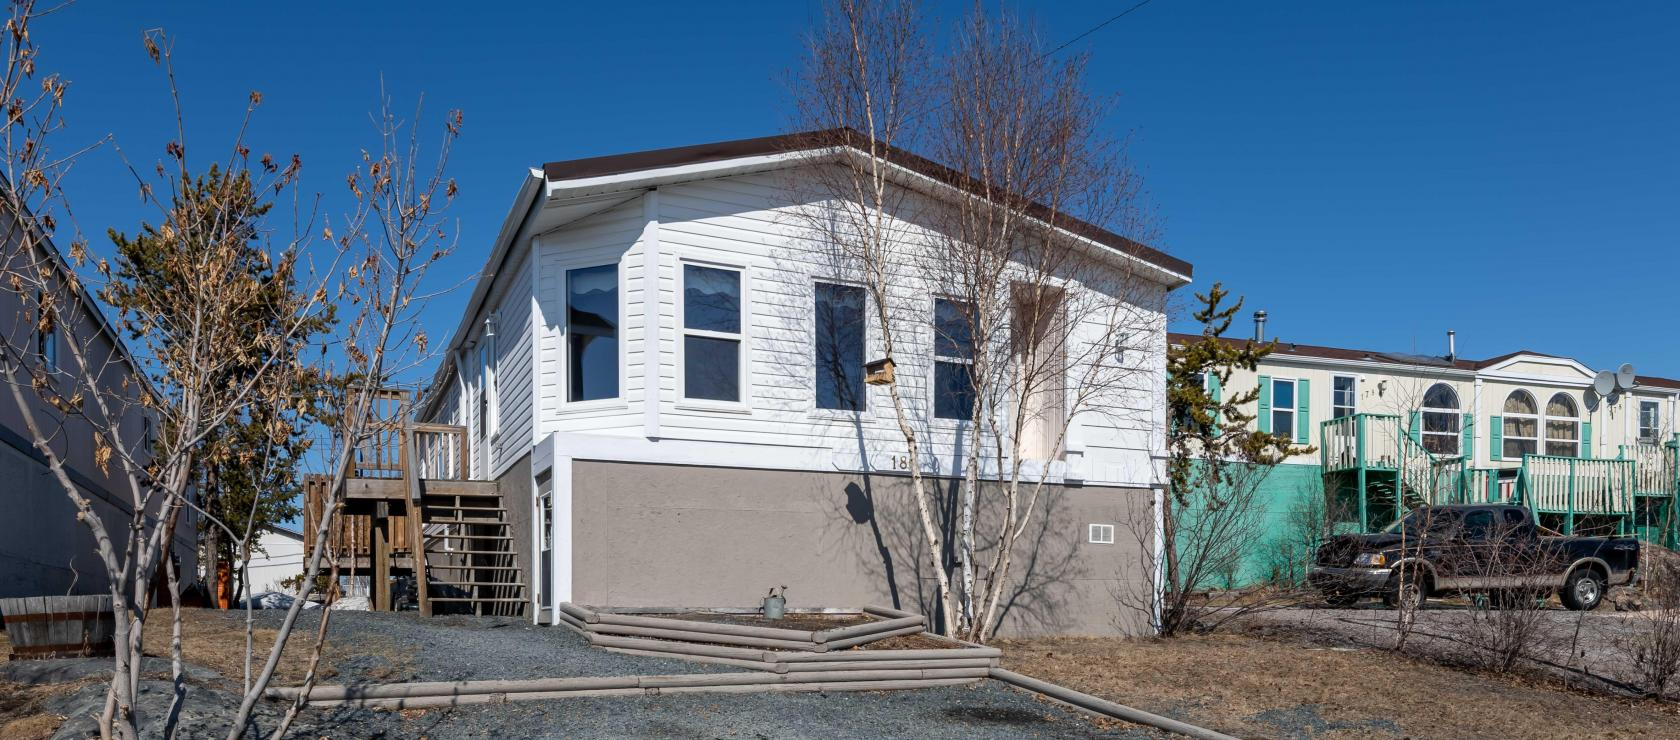 180 Jeske Cresc, Range Lake, Yellowknife 2